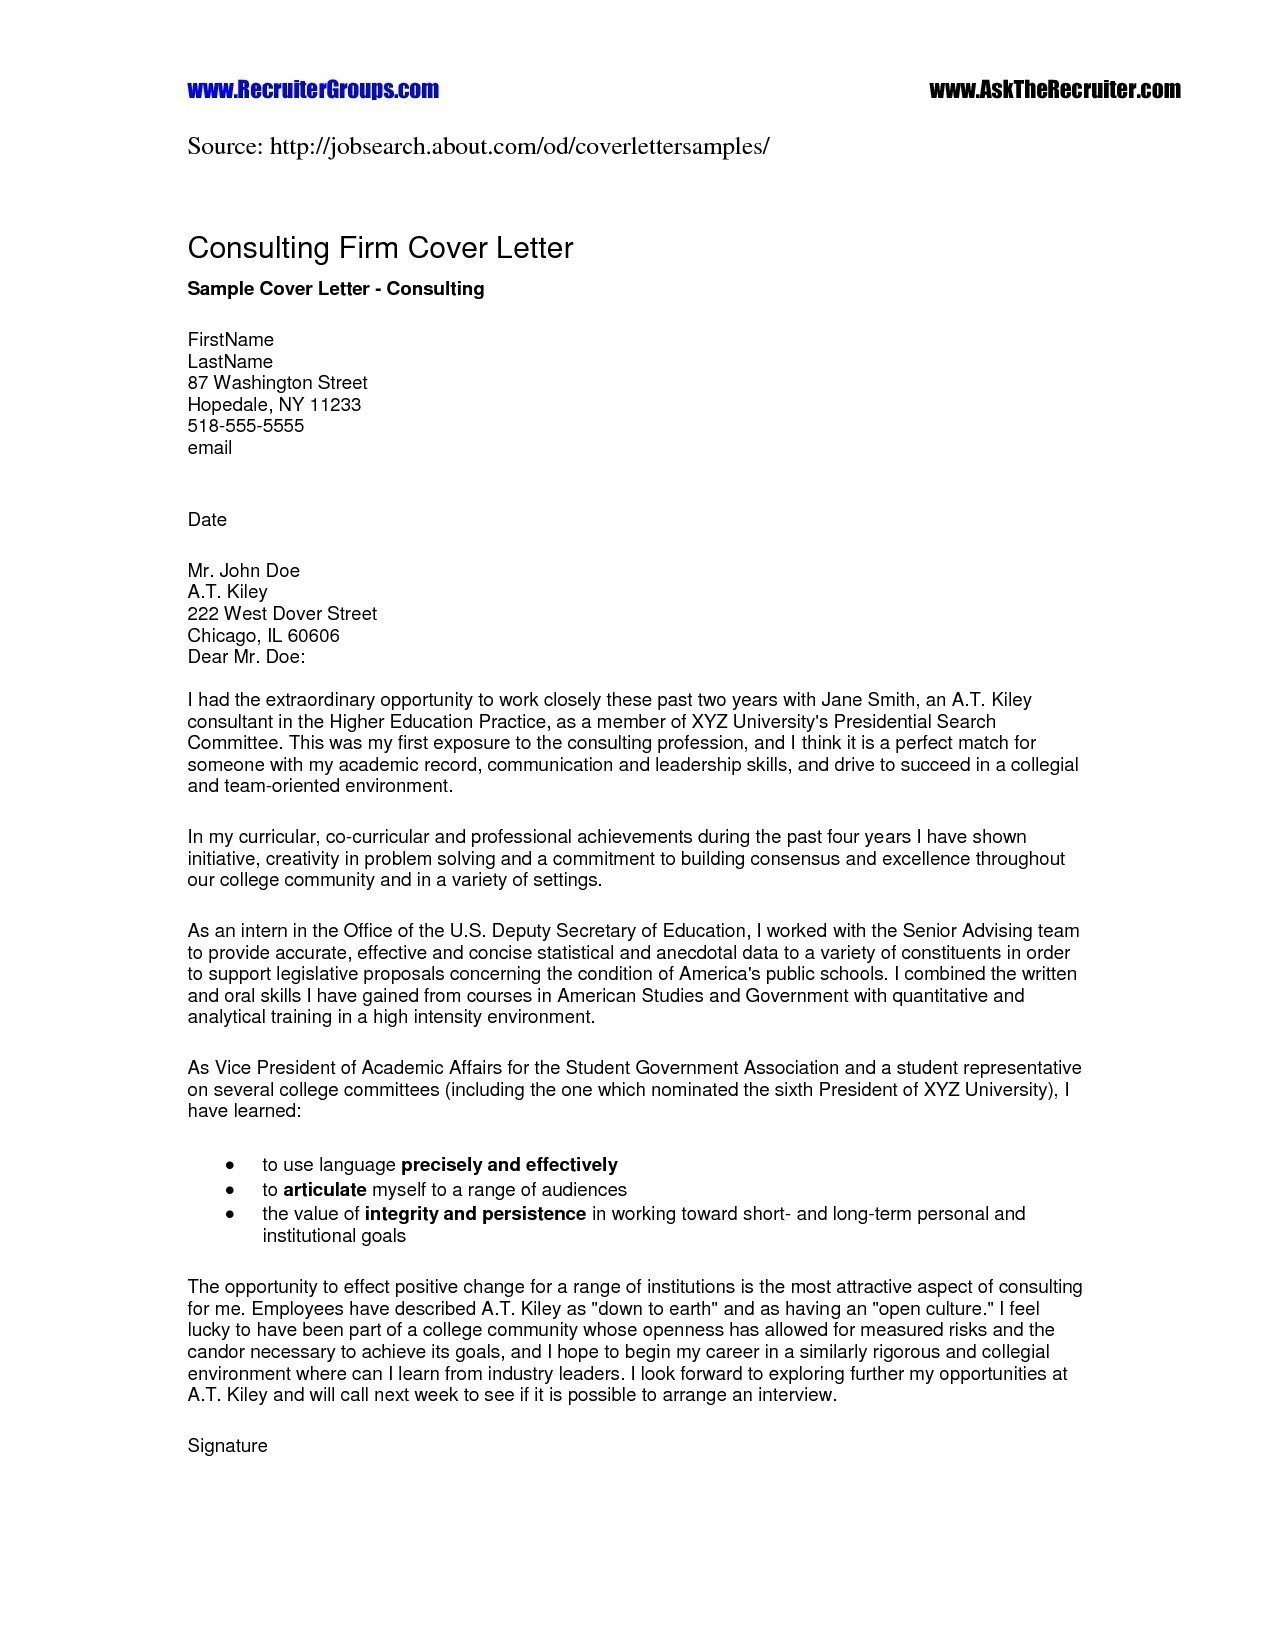 Position Offer Letter Template - How to Write Job Fer Letter Fresh Job Fer Letter Sample Best Job